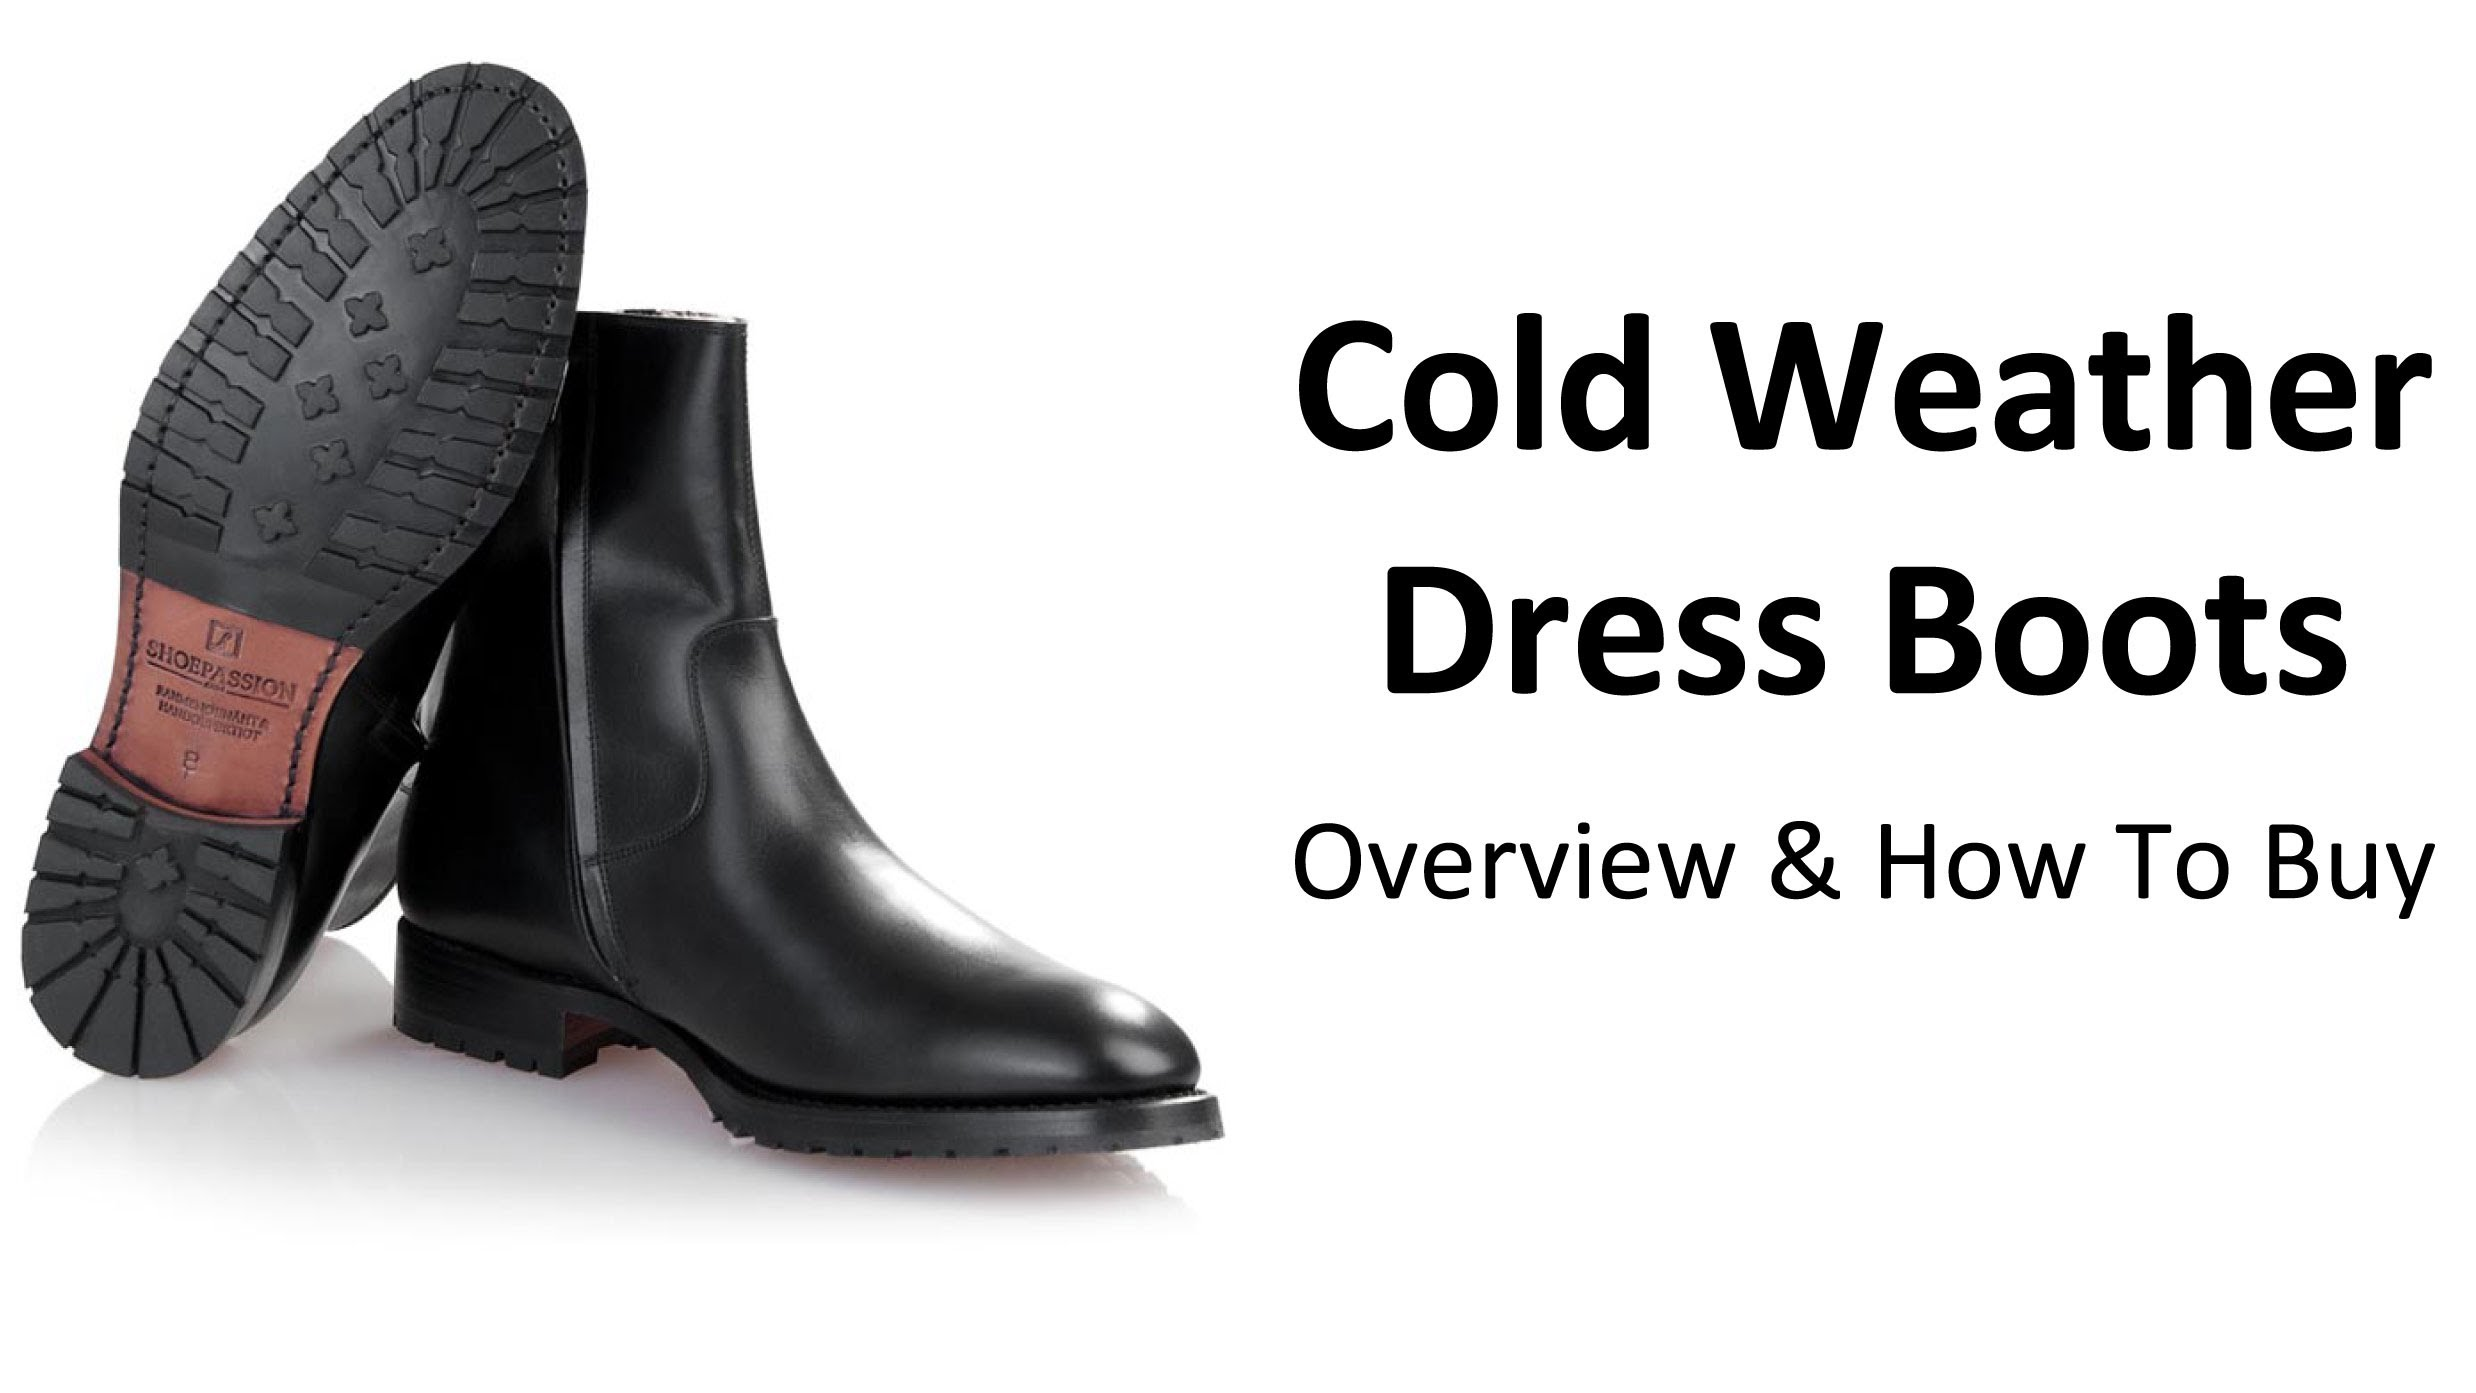 Mens Winter Dress Boots lfMjubgR